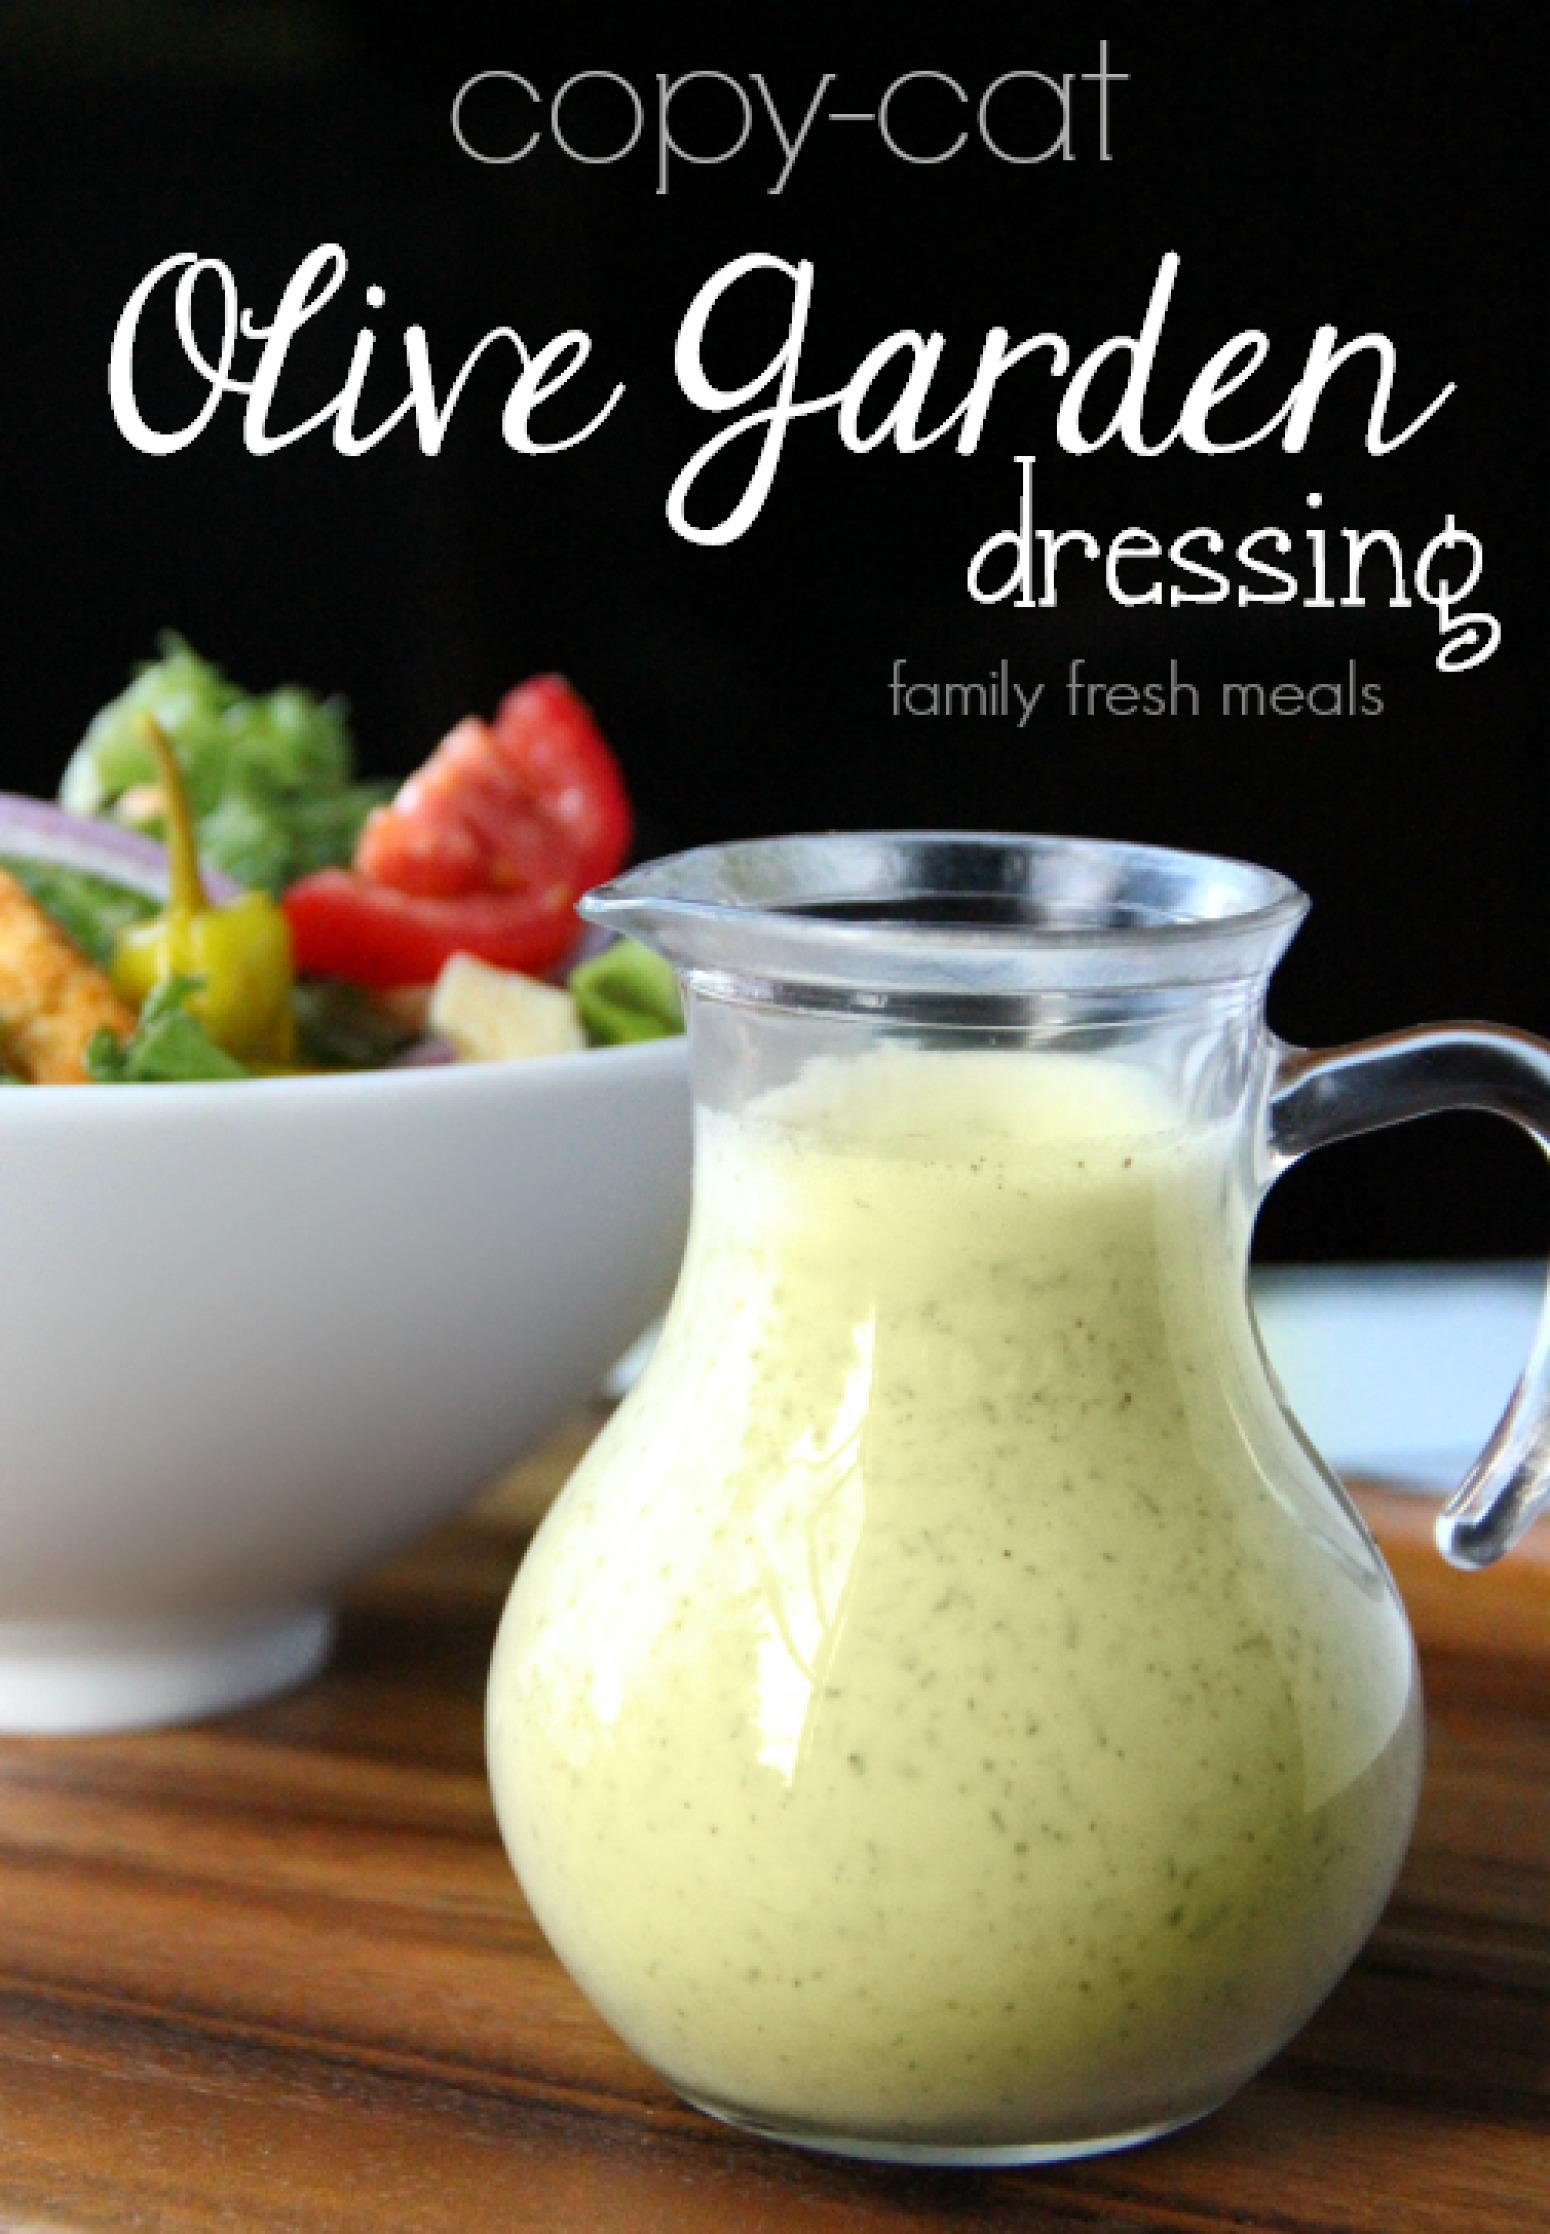 Copycat olive garden salad dressing recipe 3 just a - Olive garden salad dressing recipes ...